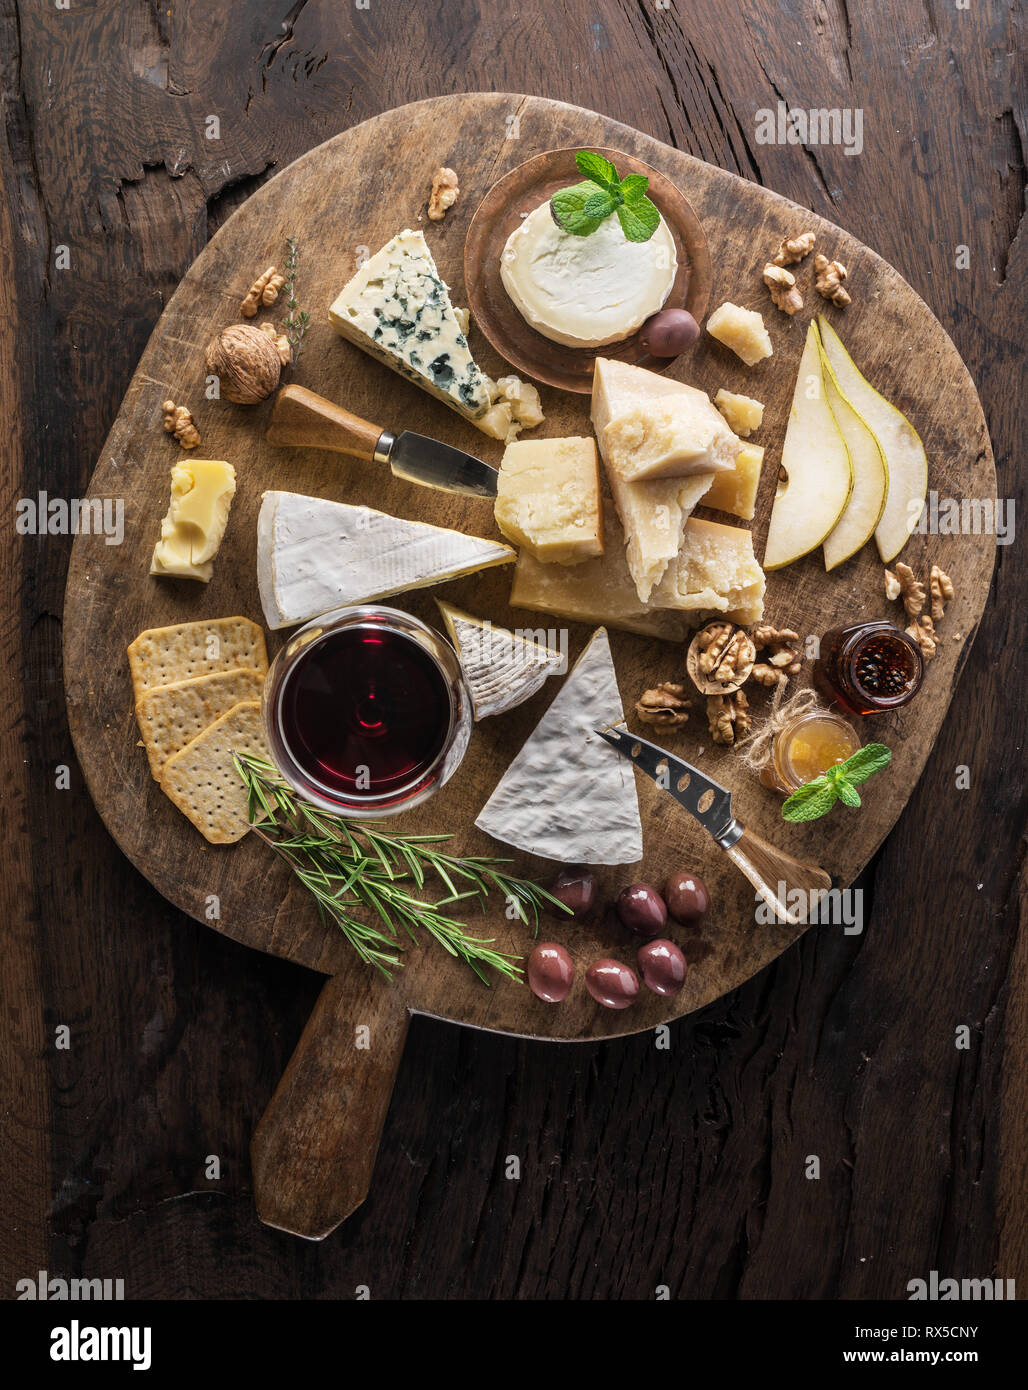 Cheese Platter With Organic Cheeses Fruits Nuts And Wine On Wooden Background Top View Tasty Cheese Starter Stock Photo Alamy